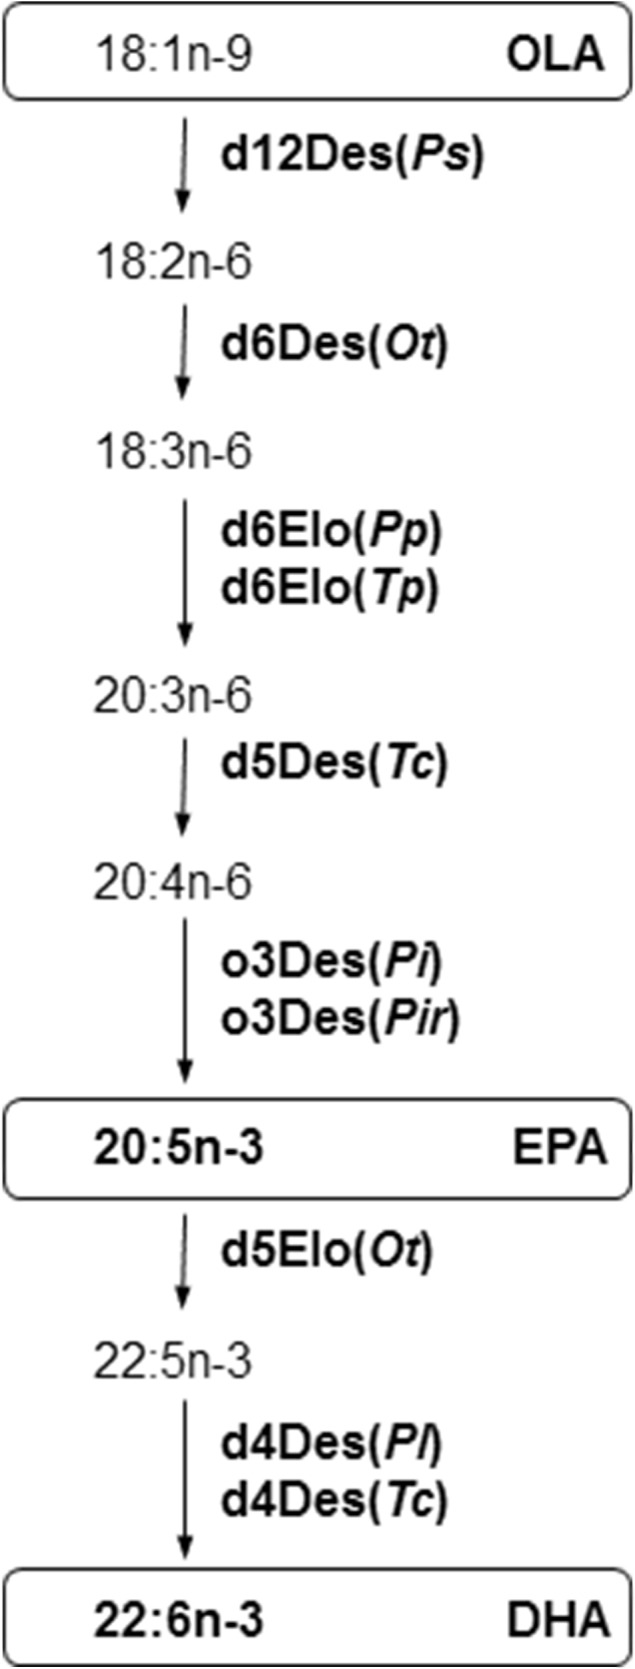 A pathway involving two elongation steps and five desaturation steps allows production of EPA (20:5n-3) and DHA (22:6n-3) from oleic acid (OLA, 18:1n-9). In this pathway seven desaturase enzymes (Des) and three elongase enzymes (Elo), further described in Table 1 , modify fatty acid substrates that are covalently bound to a carrier (e.g. coenzyme A or phosphatidylcholine). Shown is a simplified route for synthesis of DHA that only describes a fatty acid moiety, but not the acyl-carrier, that is recognized by each enzyme